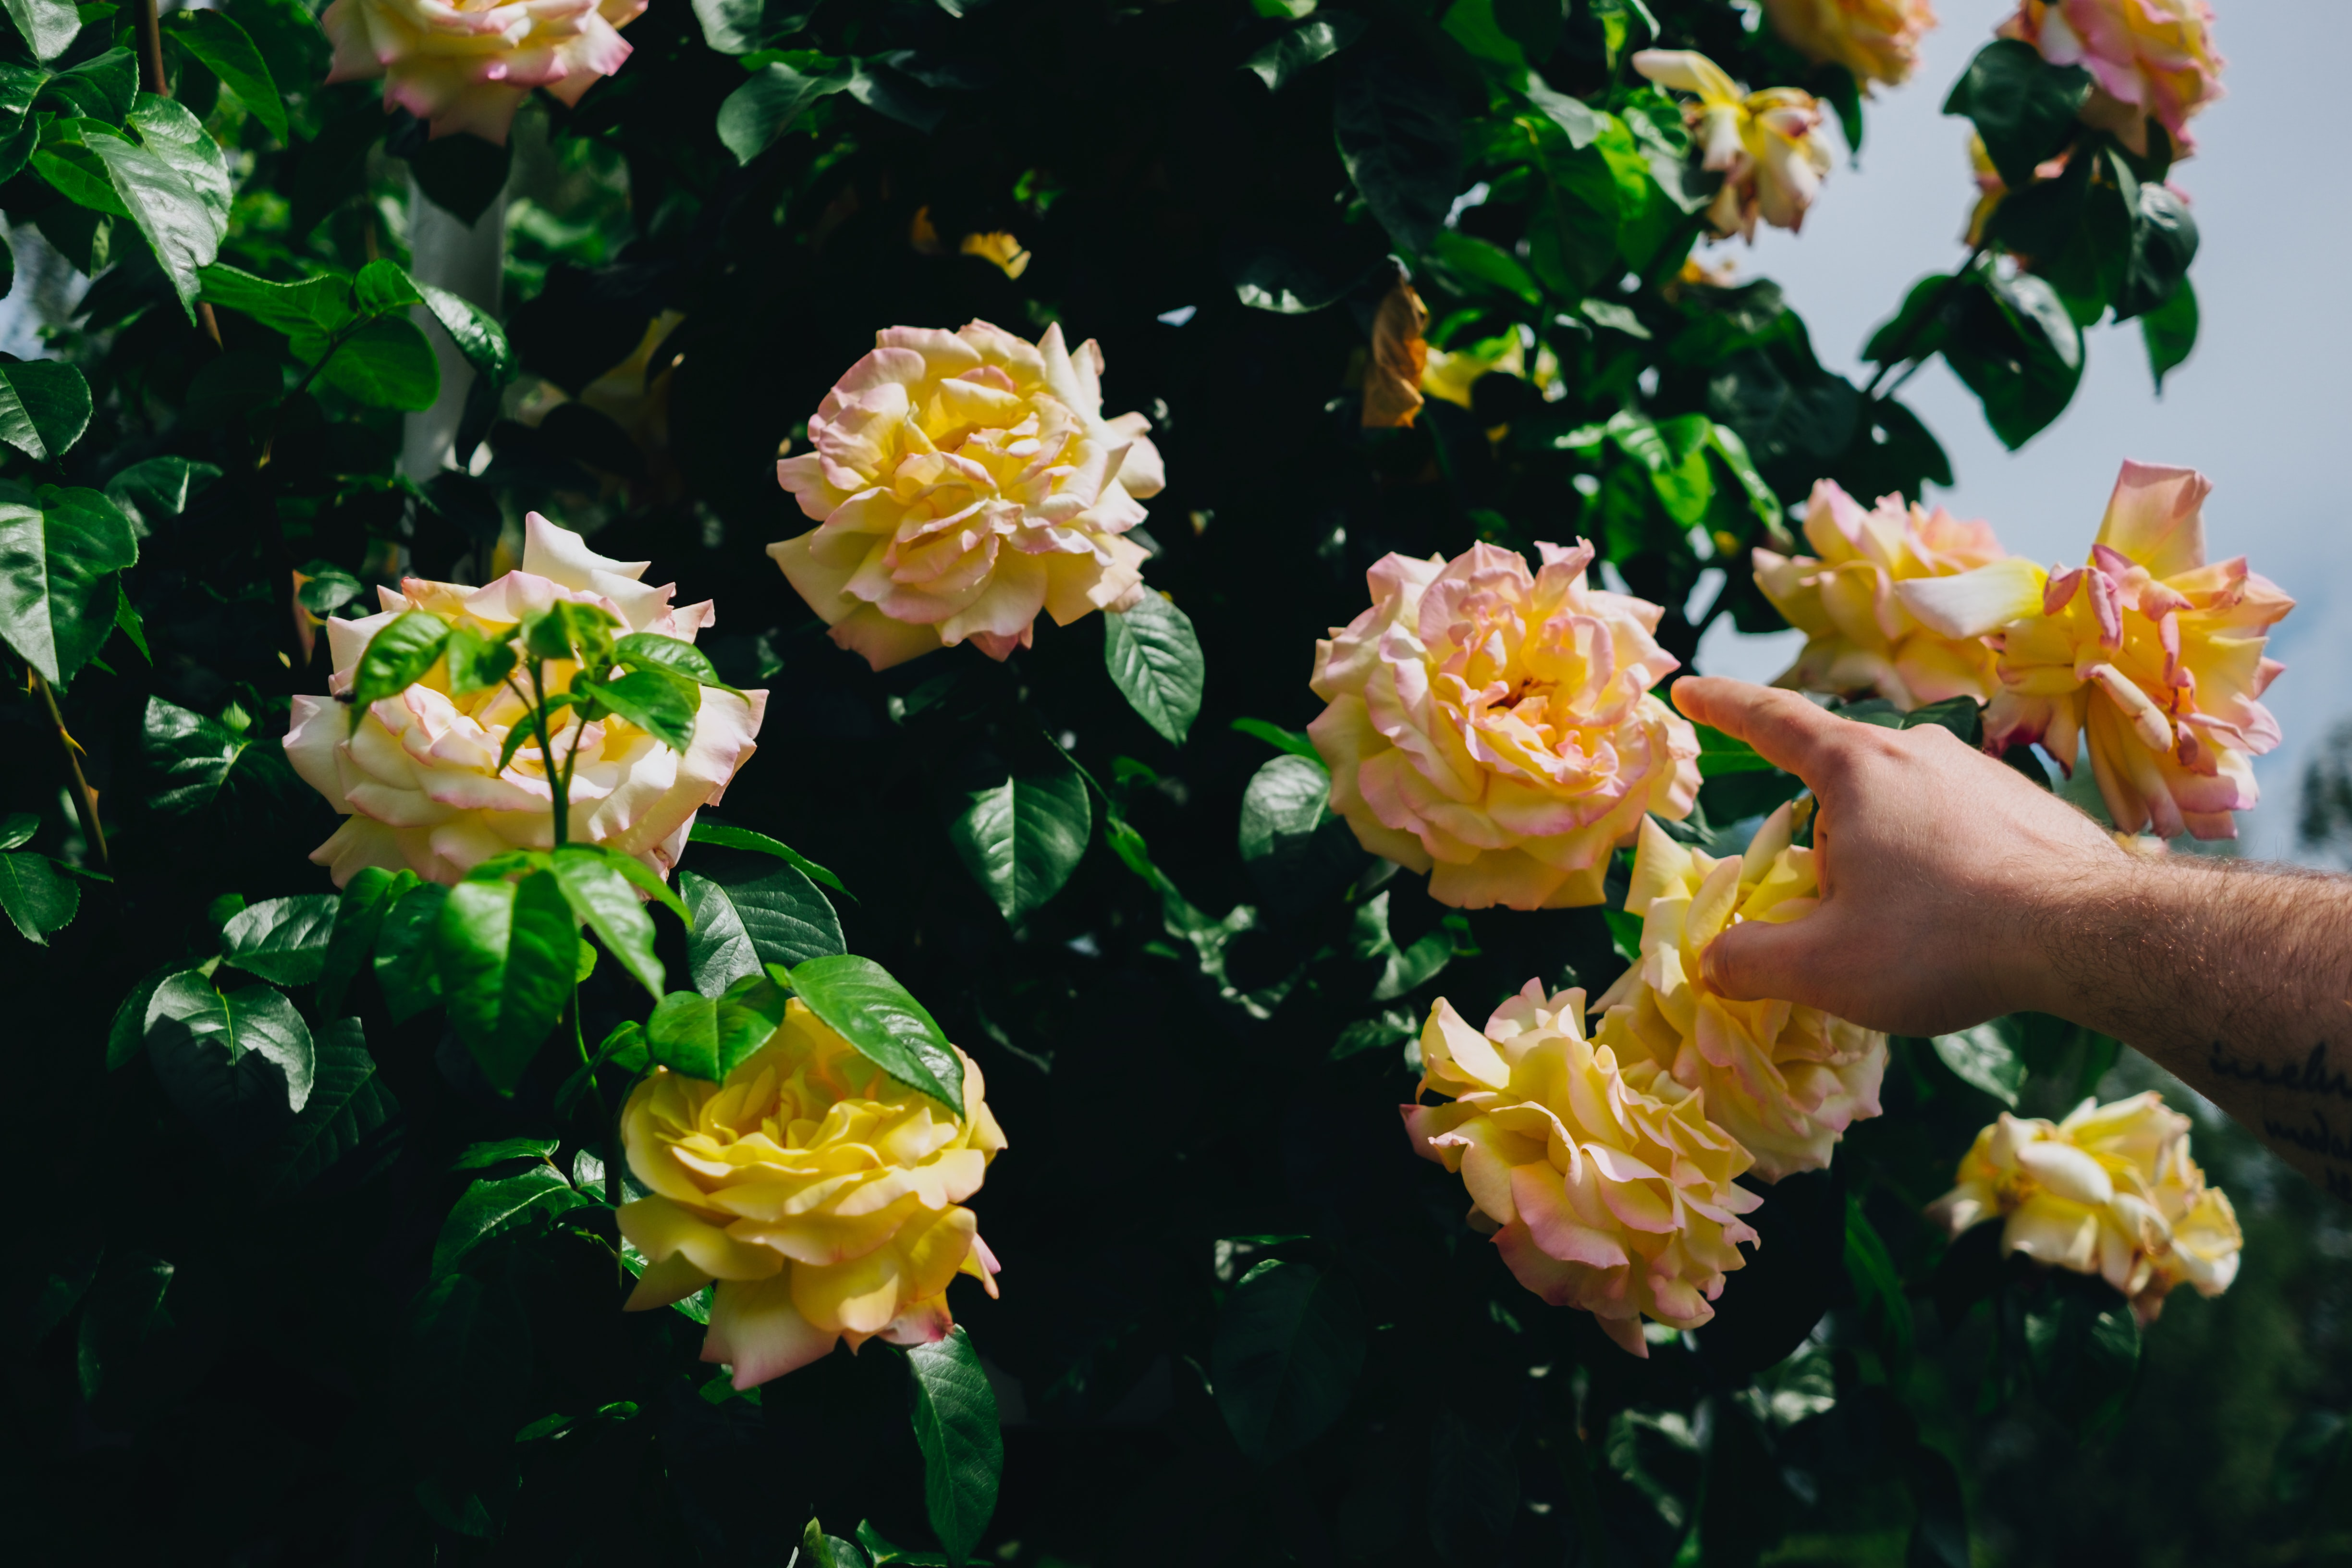 person about to hold yellow-and-red rose flowers